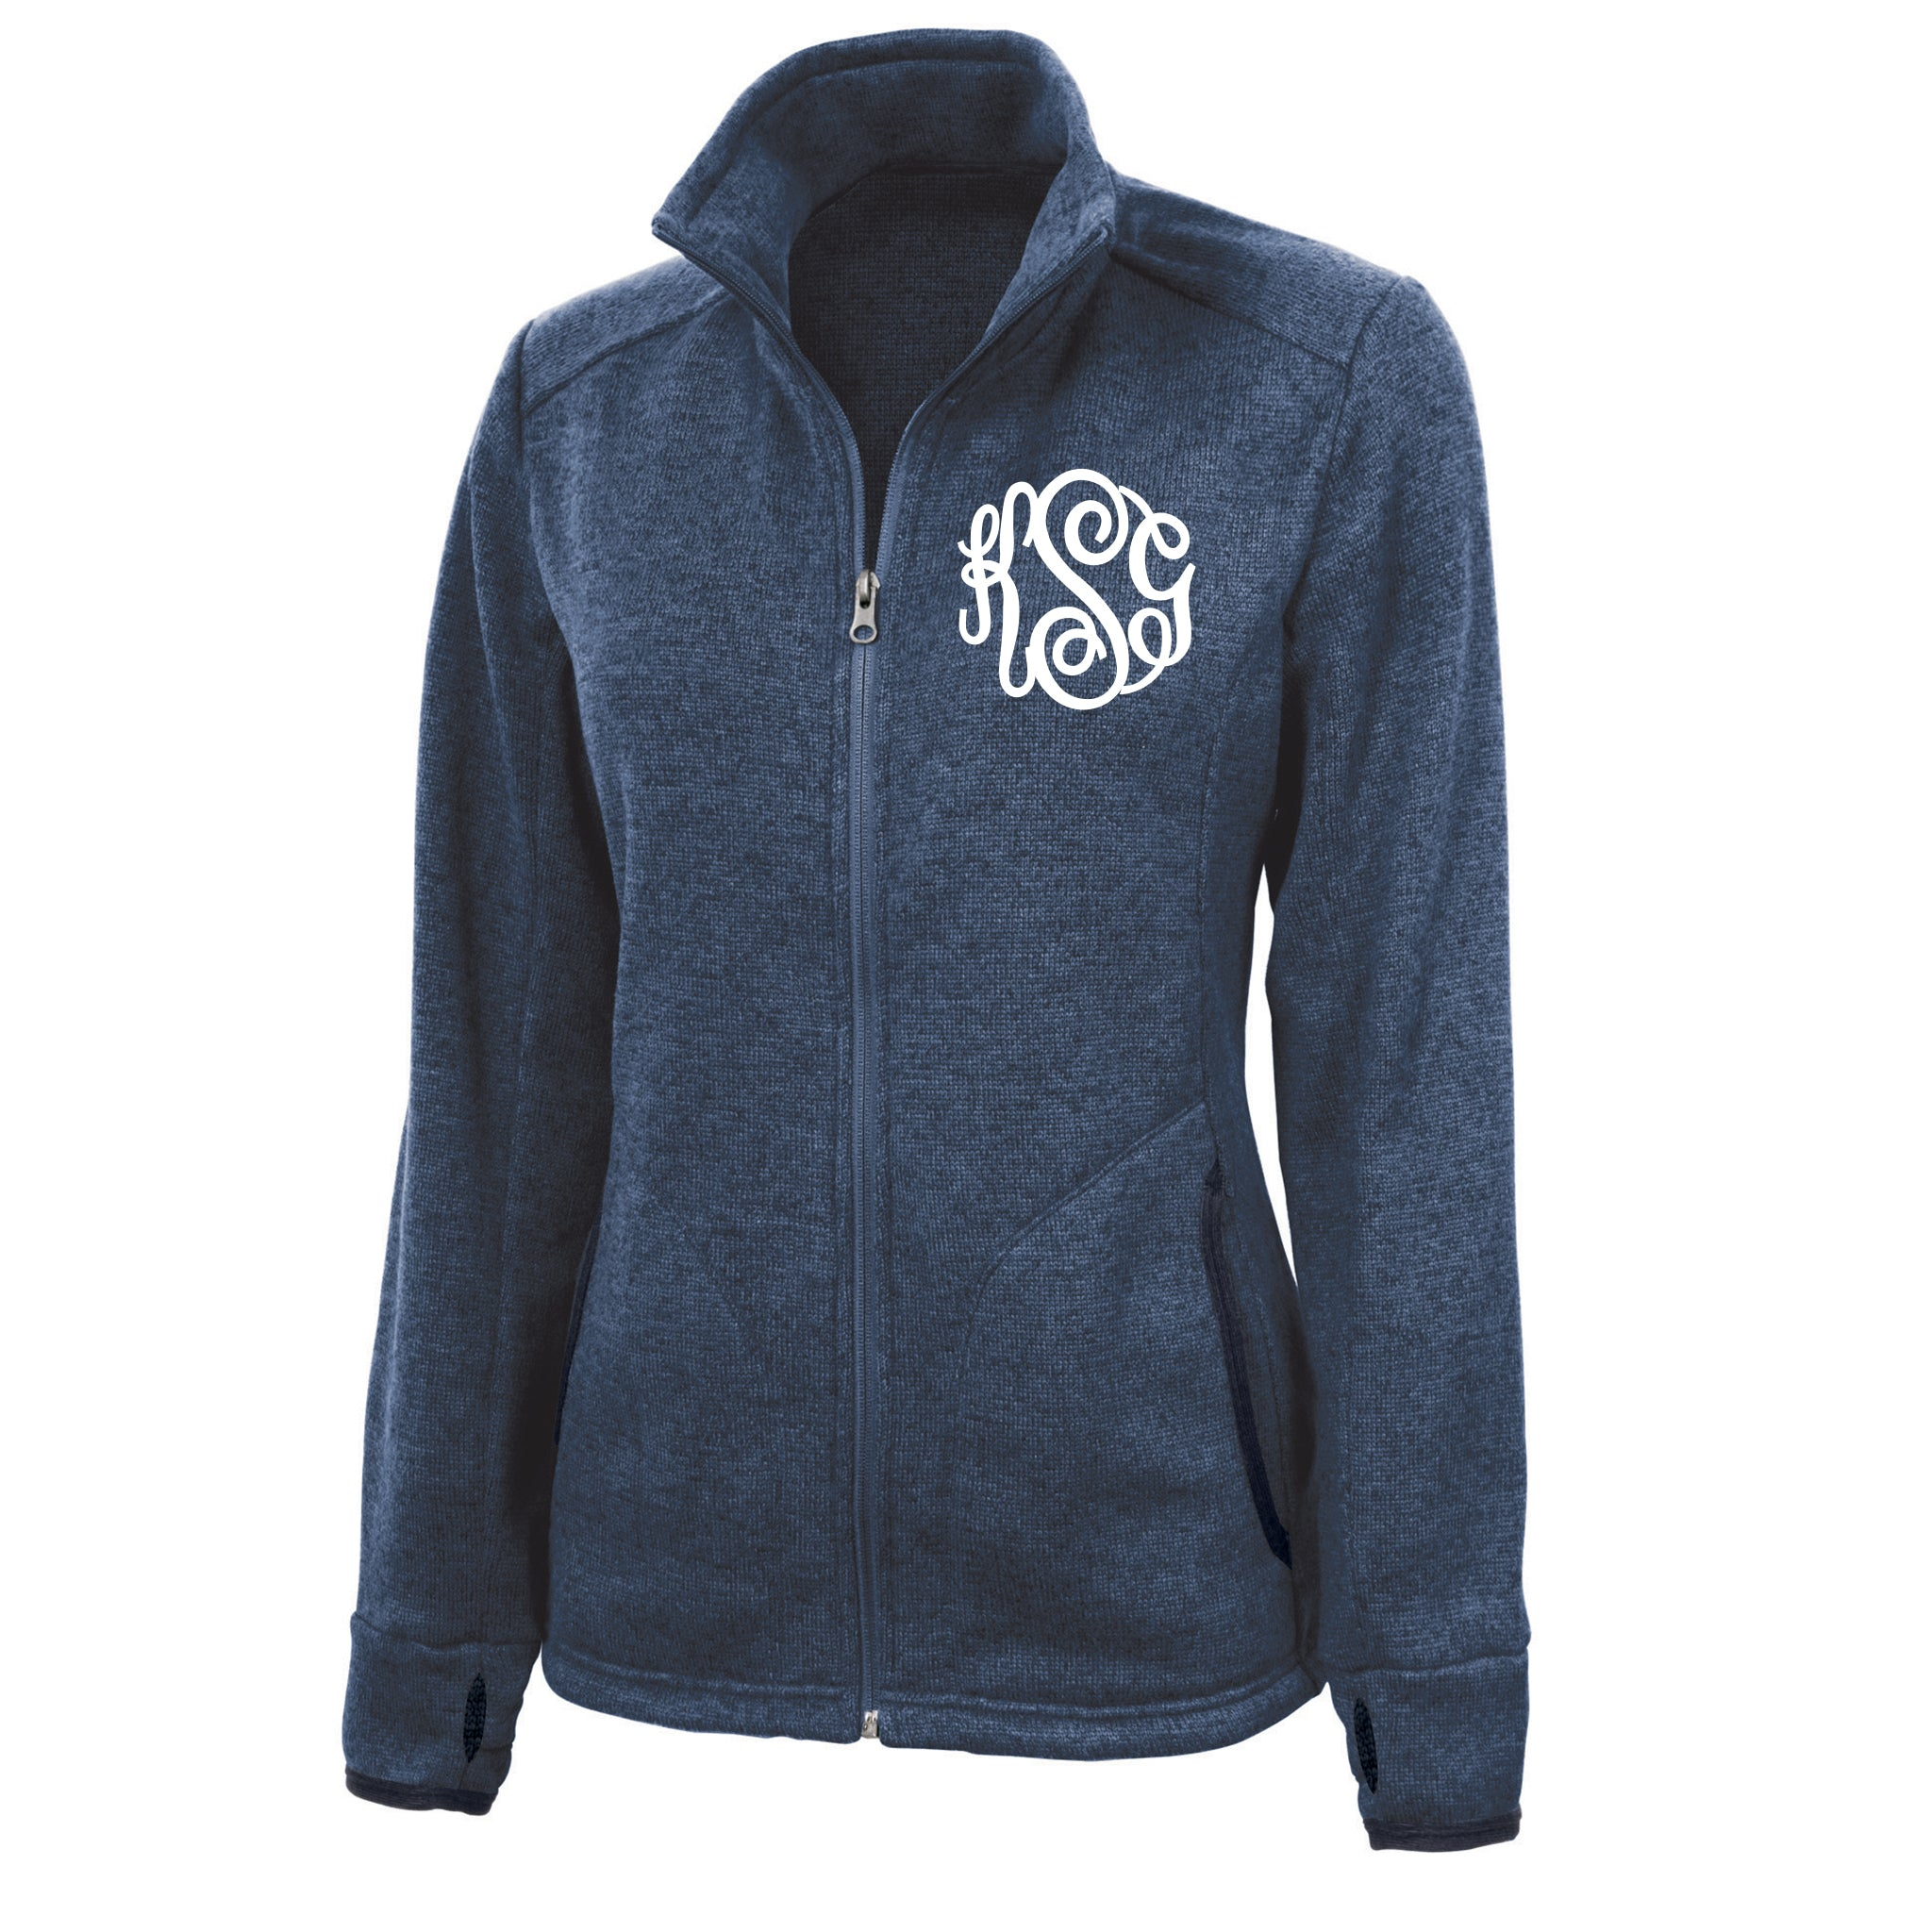 Monogram Heather Fleece Jacket in Blue